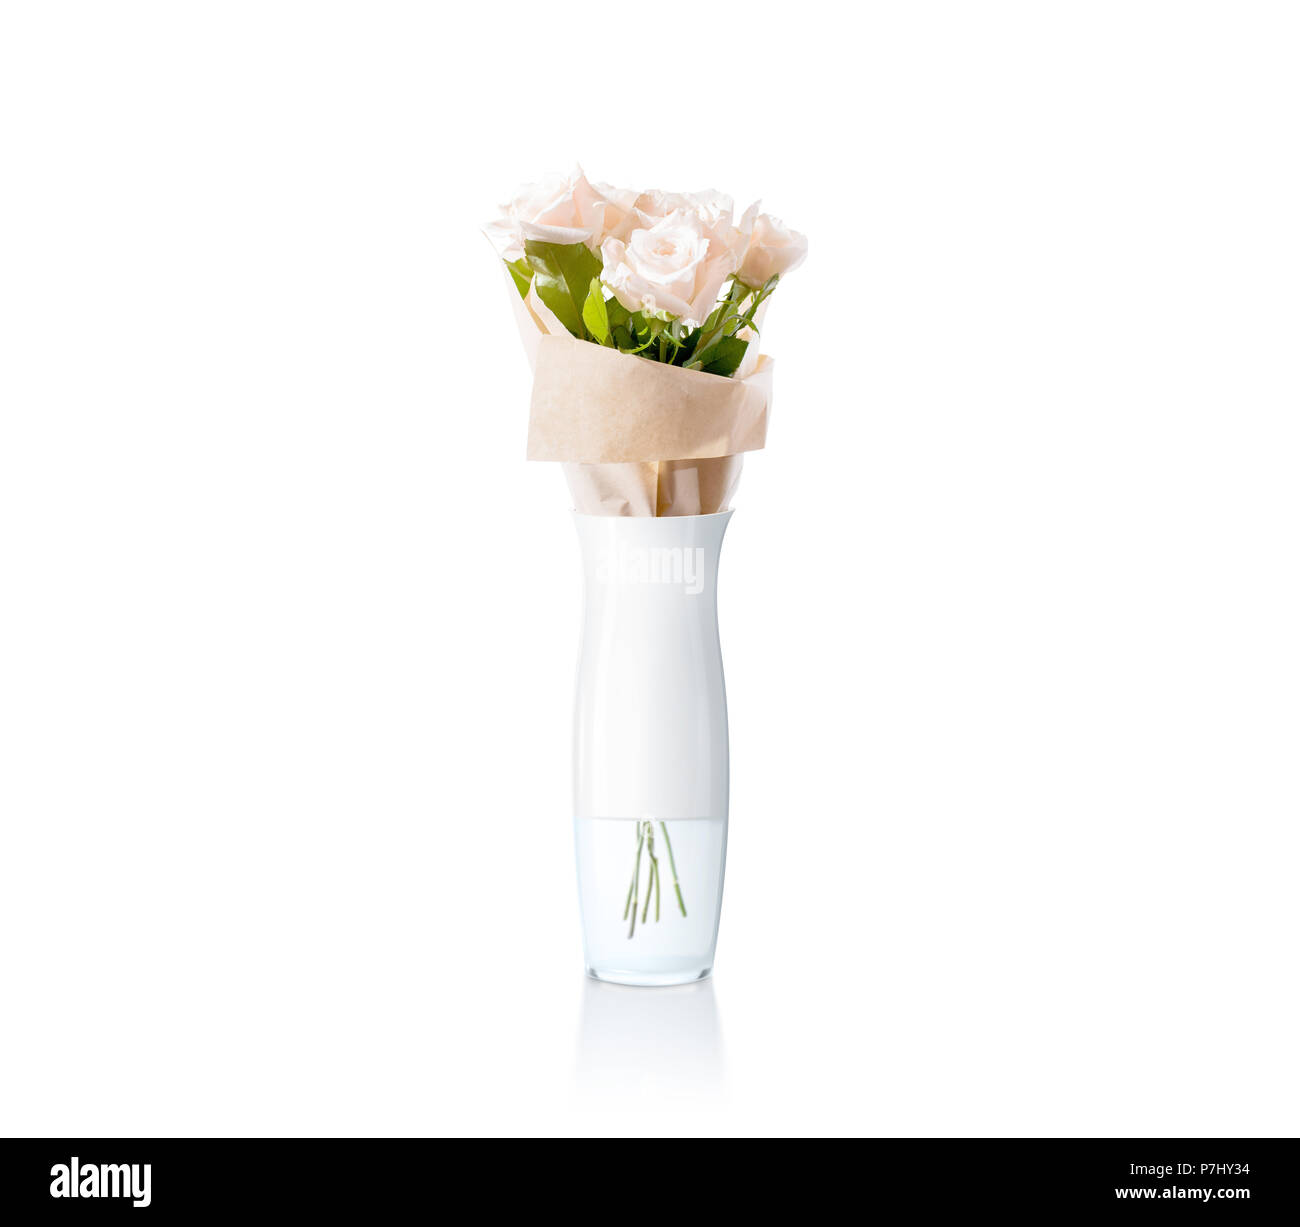 Blank white vase with flowers bouquet design mockup, clipping path ...